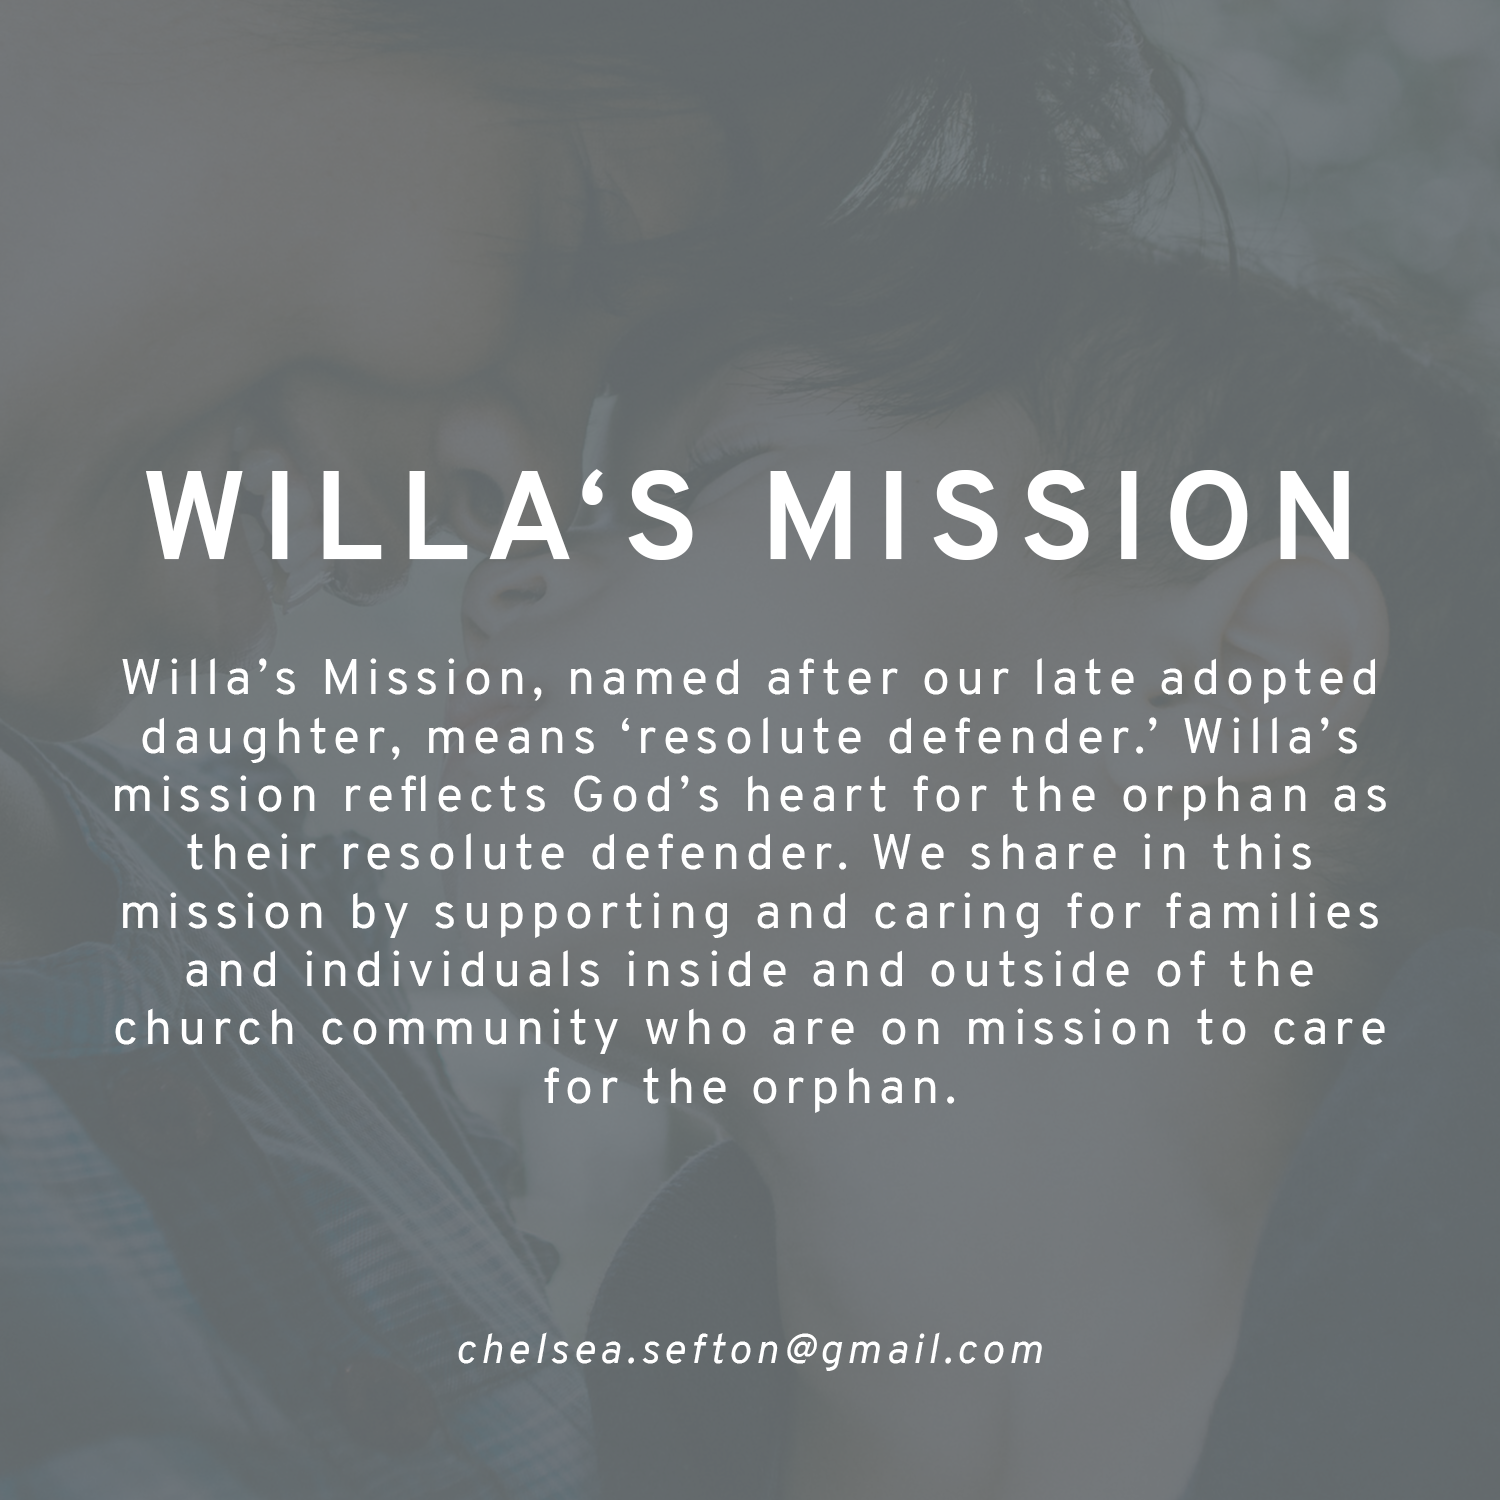 willasmission.png